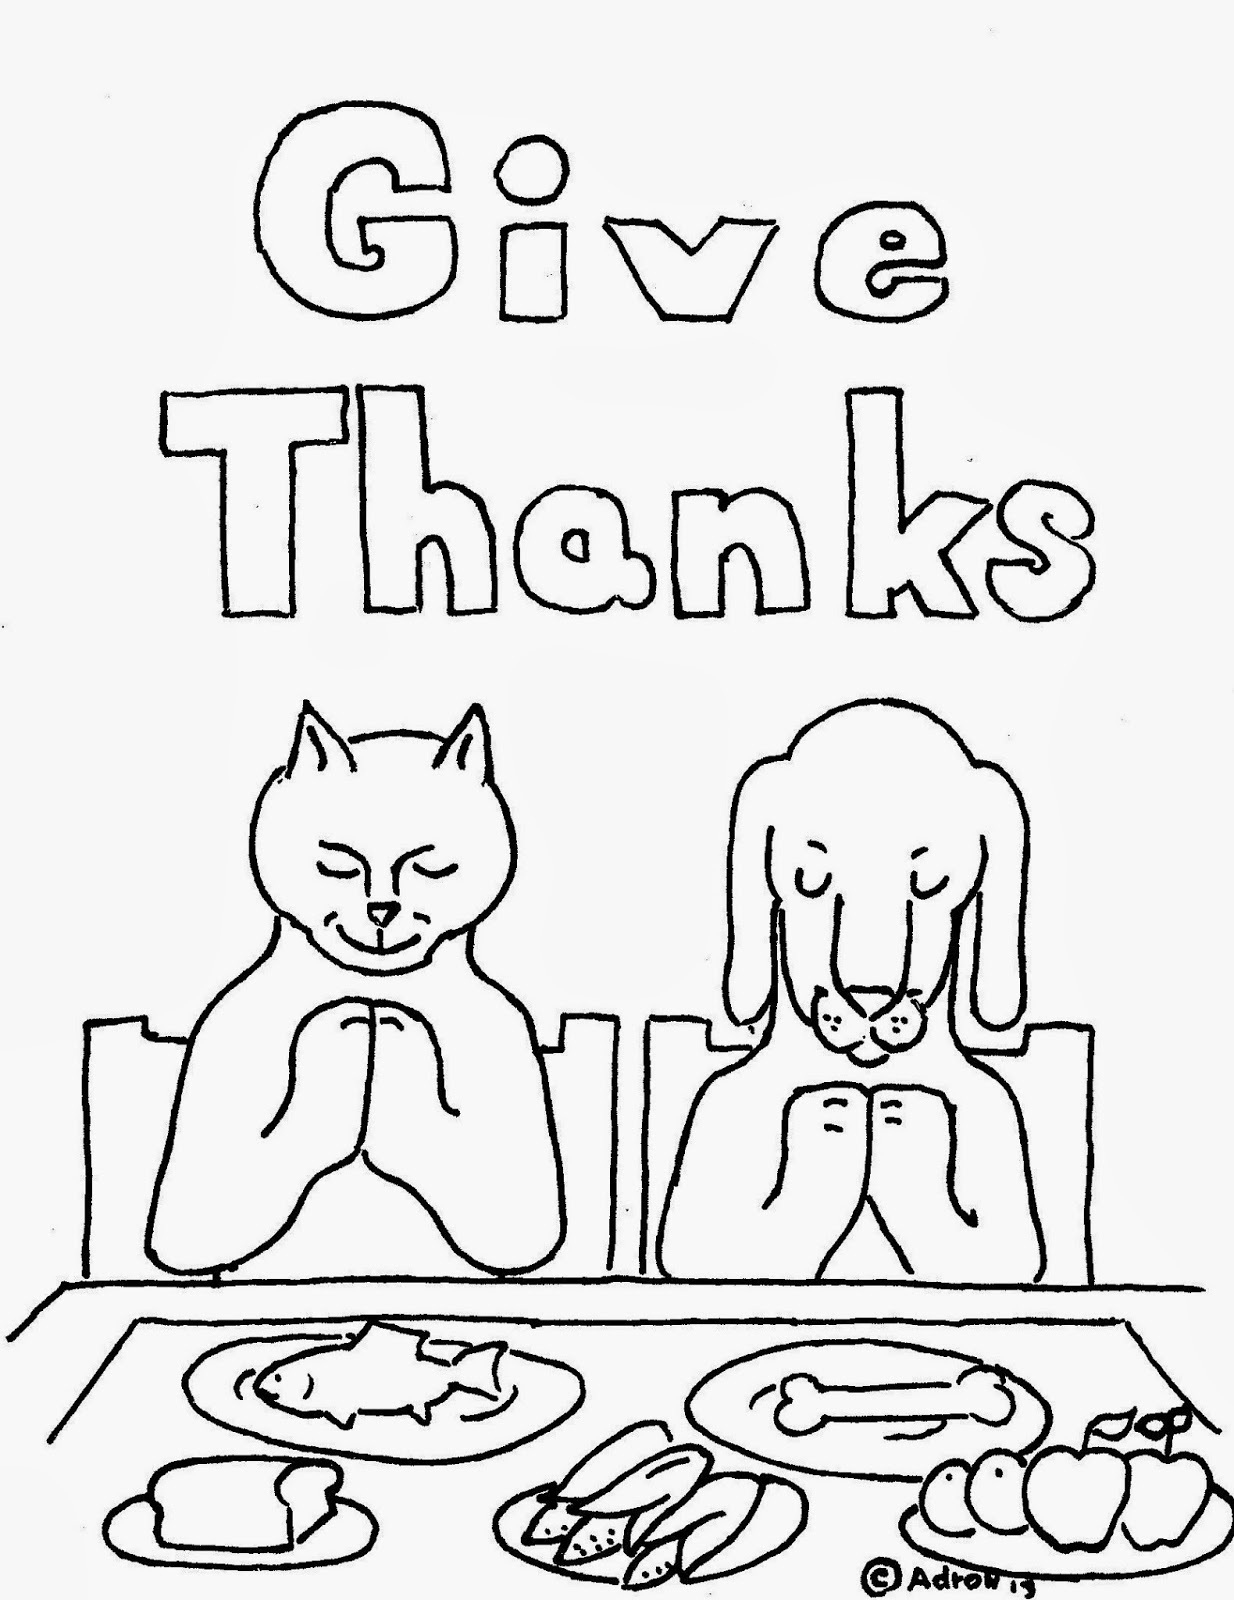 Coloring pages about gving ~ Coloring Pages for Kids by Mr. Adron: Animals Give Thanks ...